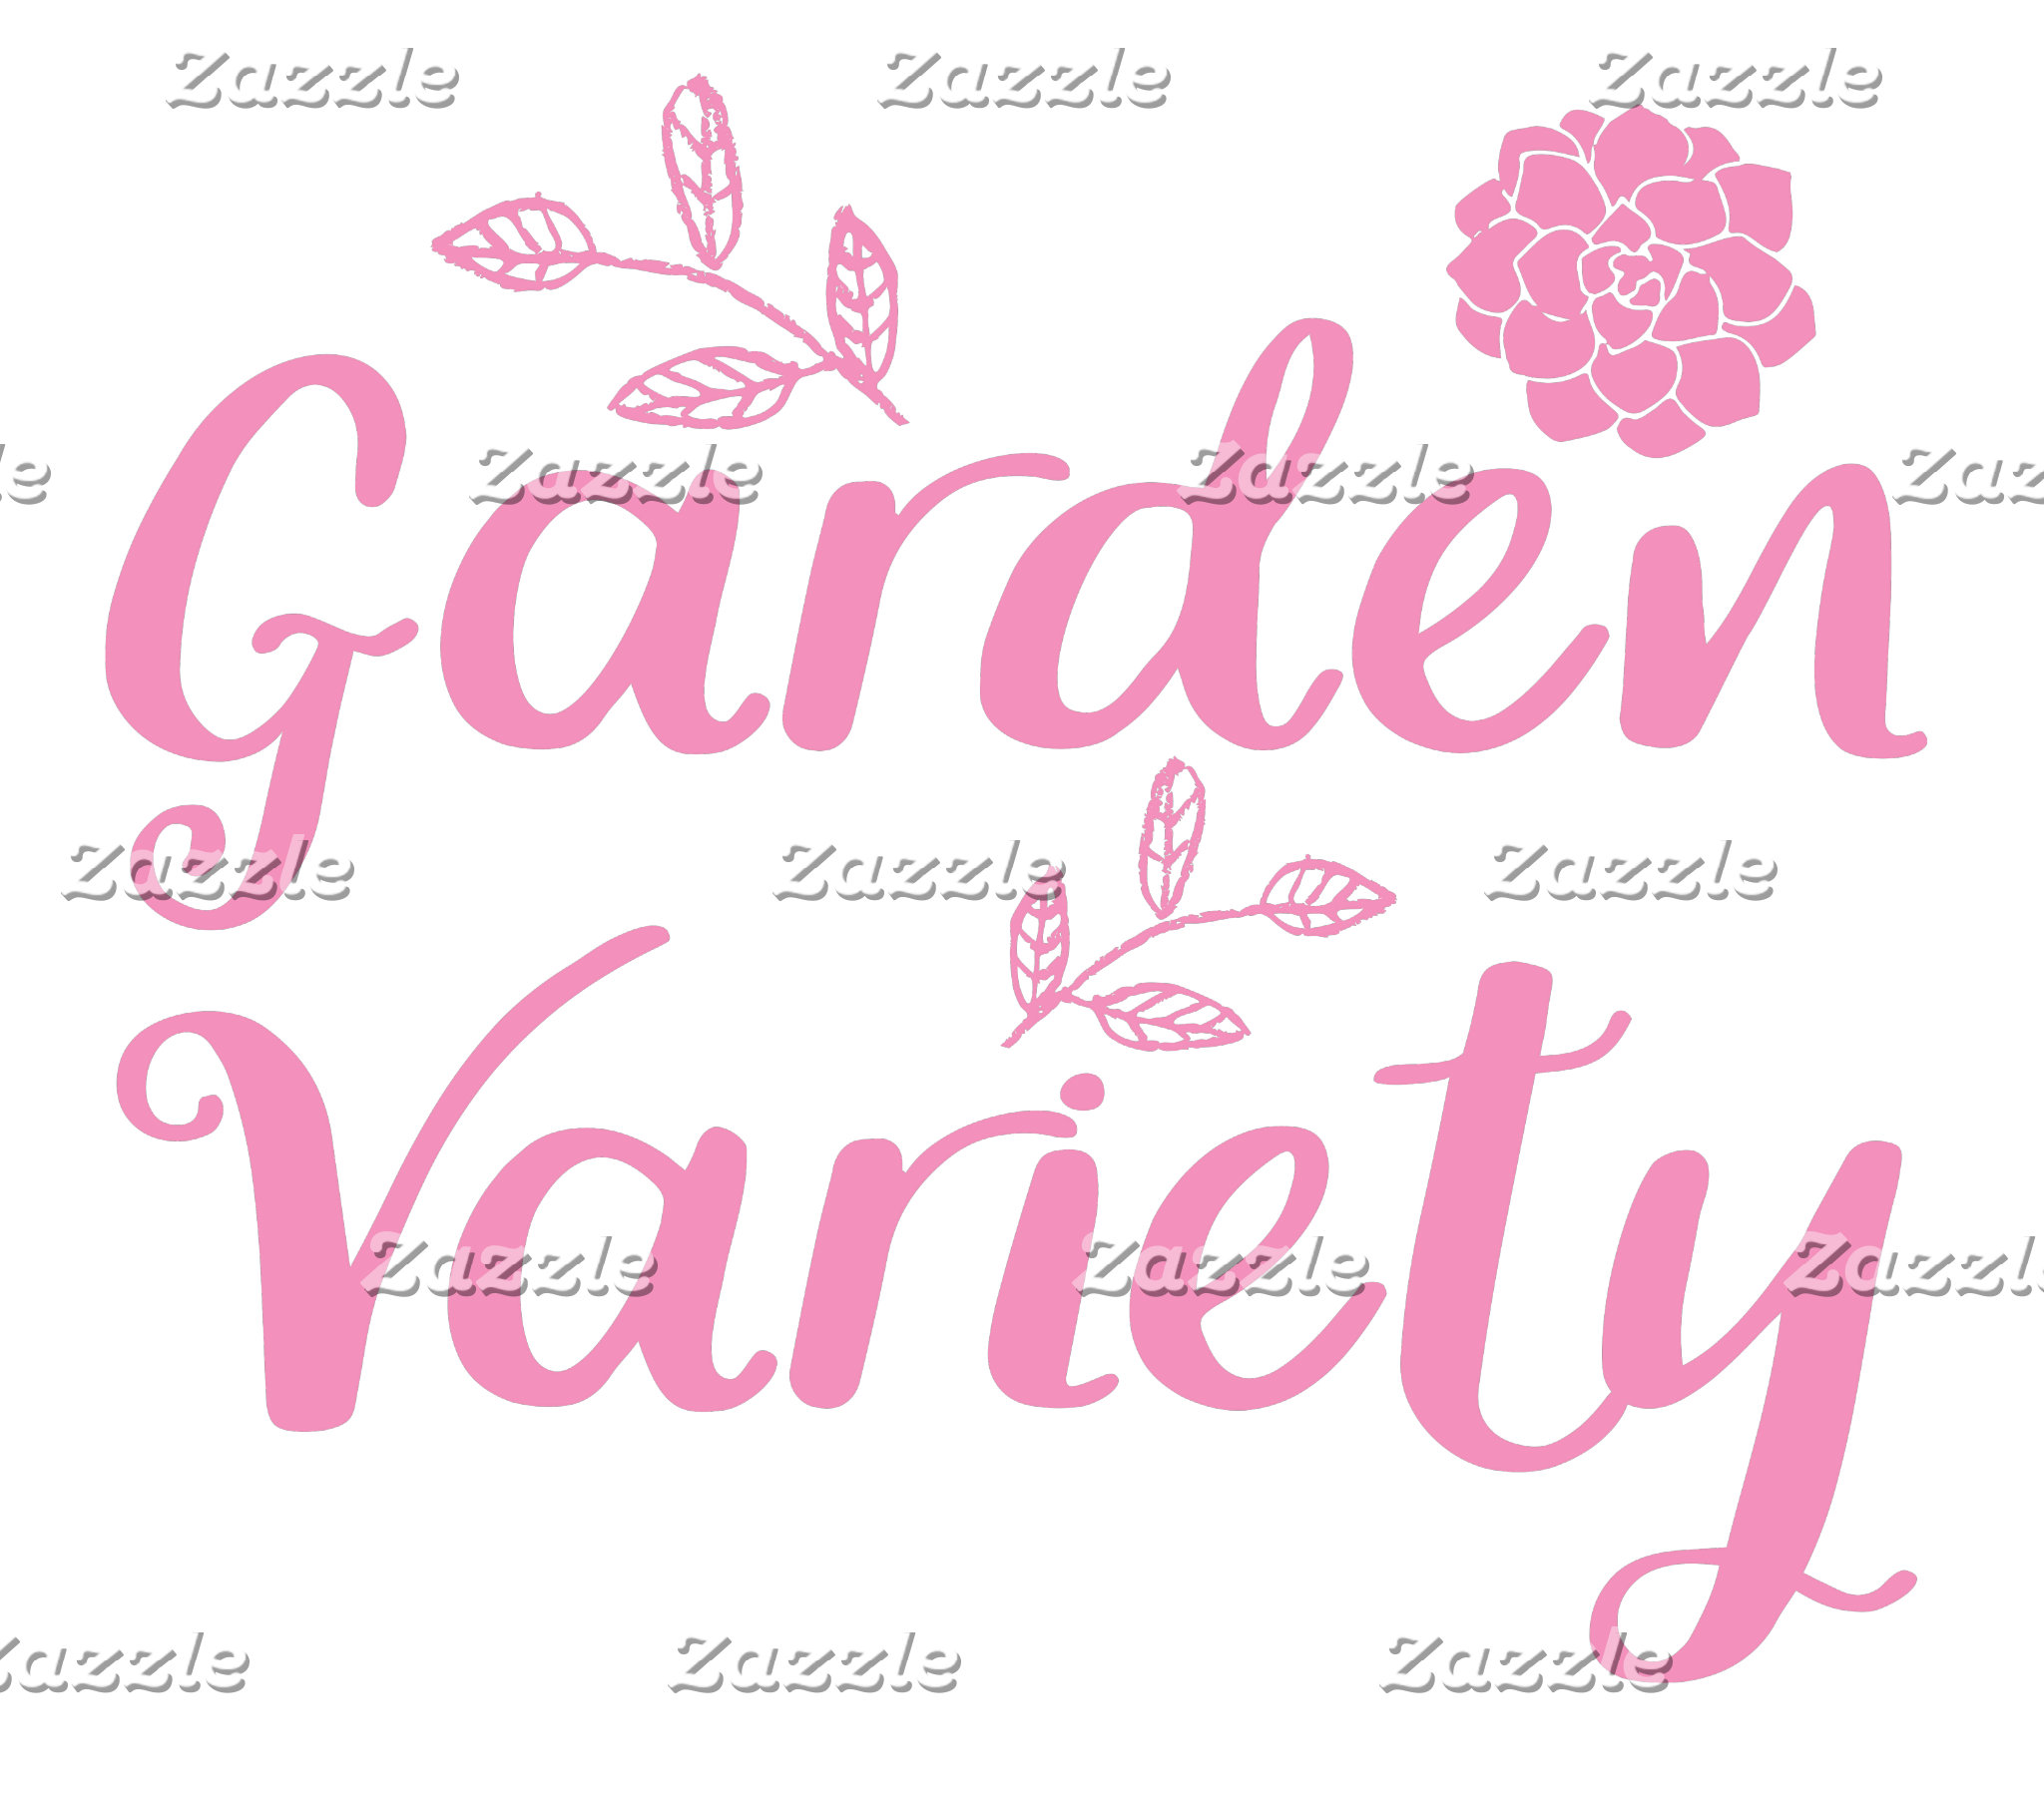 garden variety in pink with flowers